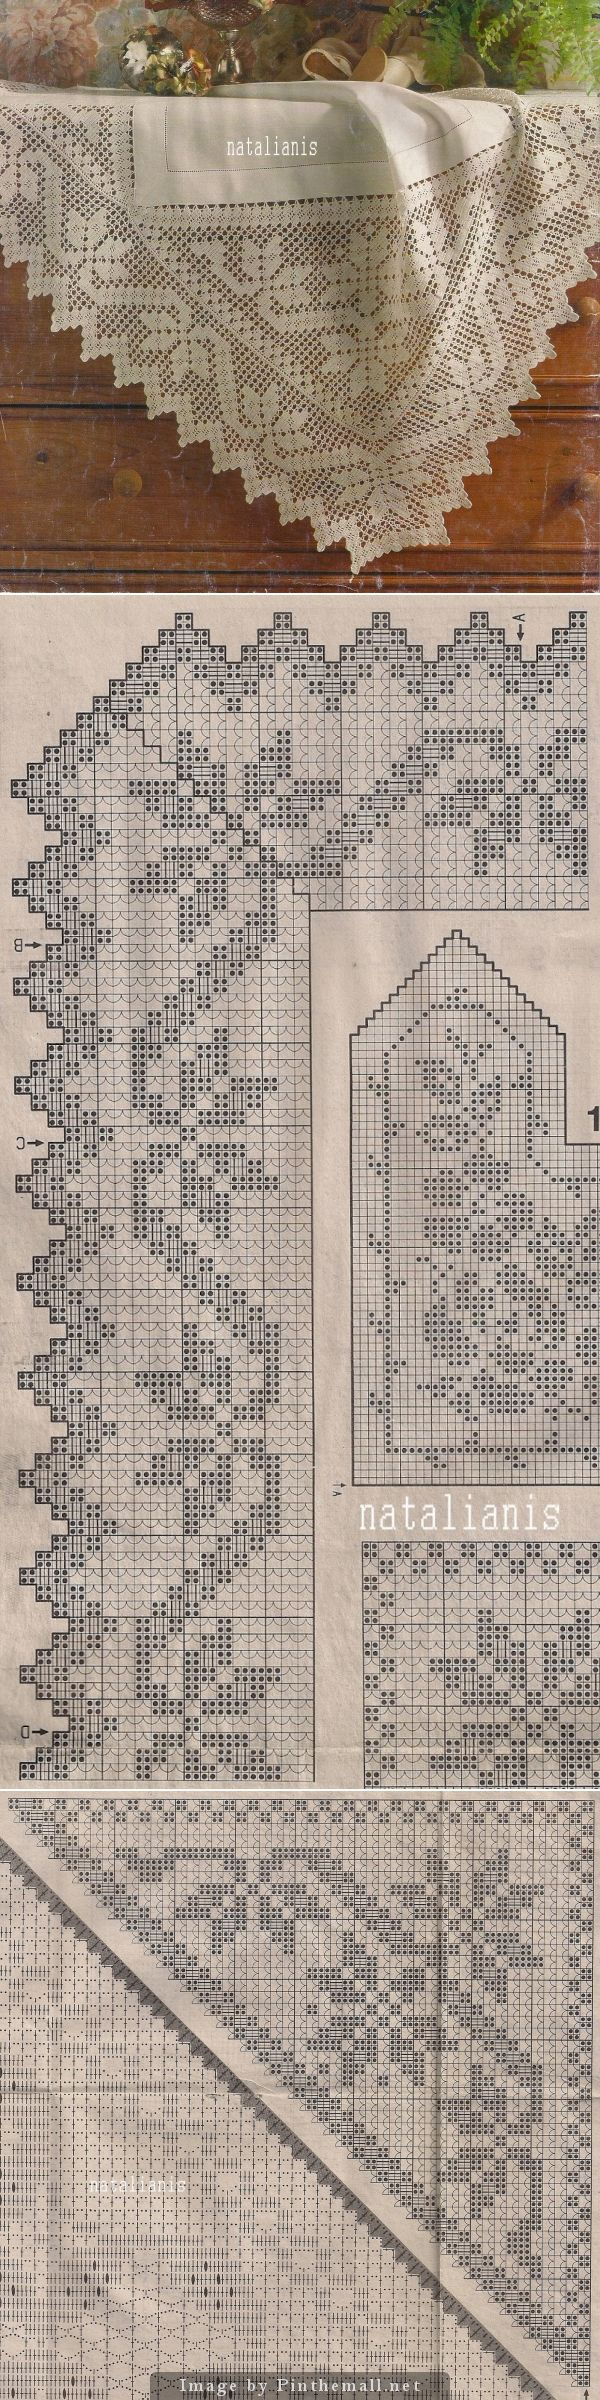 Filet crochet edging, edging's corner, corner insert ~~ http://natalianis.livejournal.com/